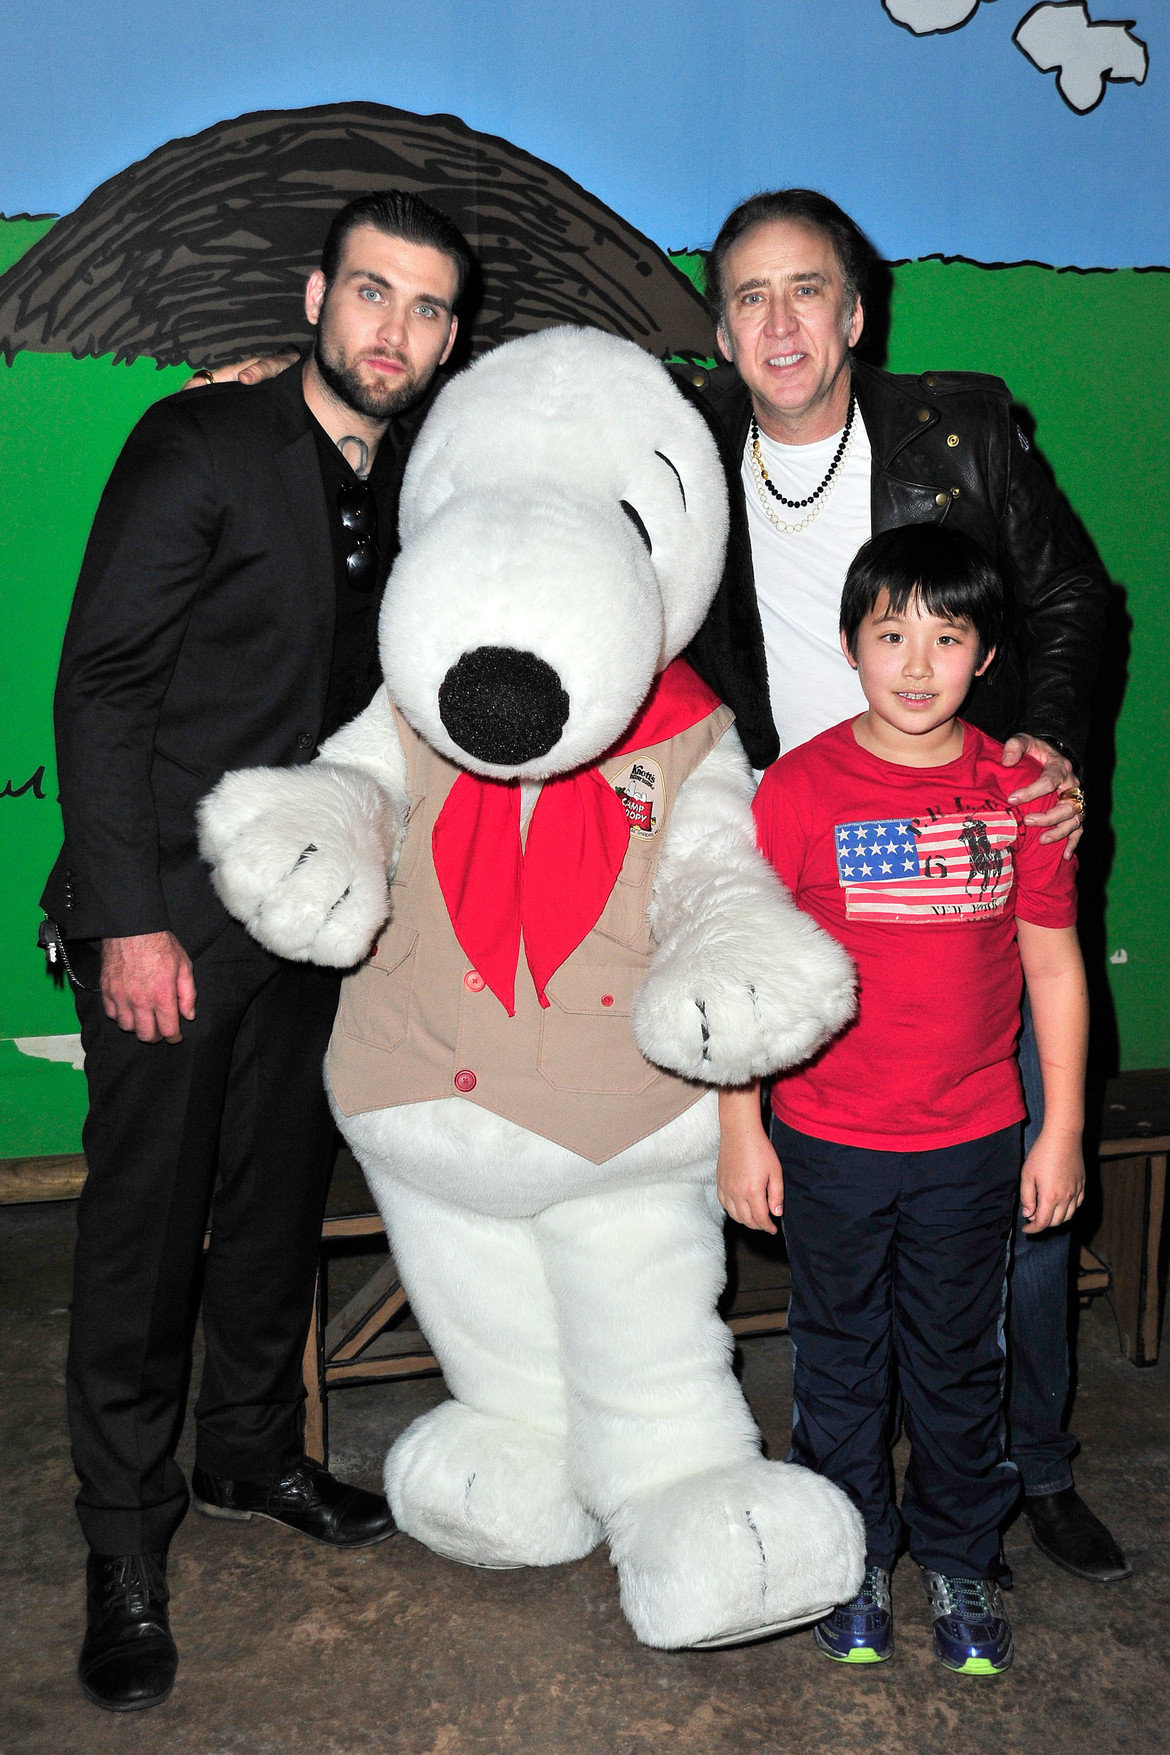 cage_family_snoopy.jpg